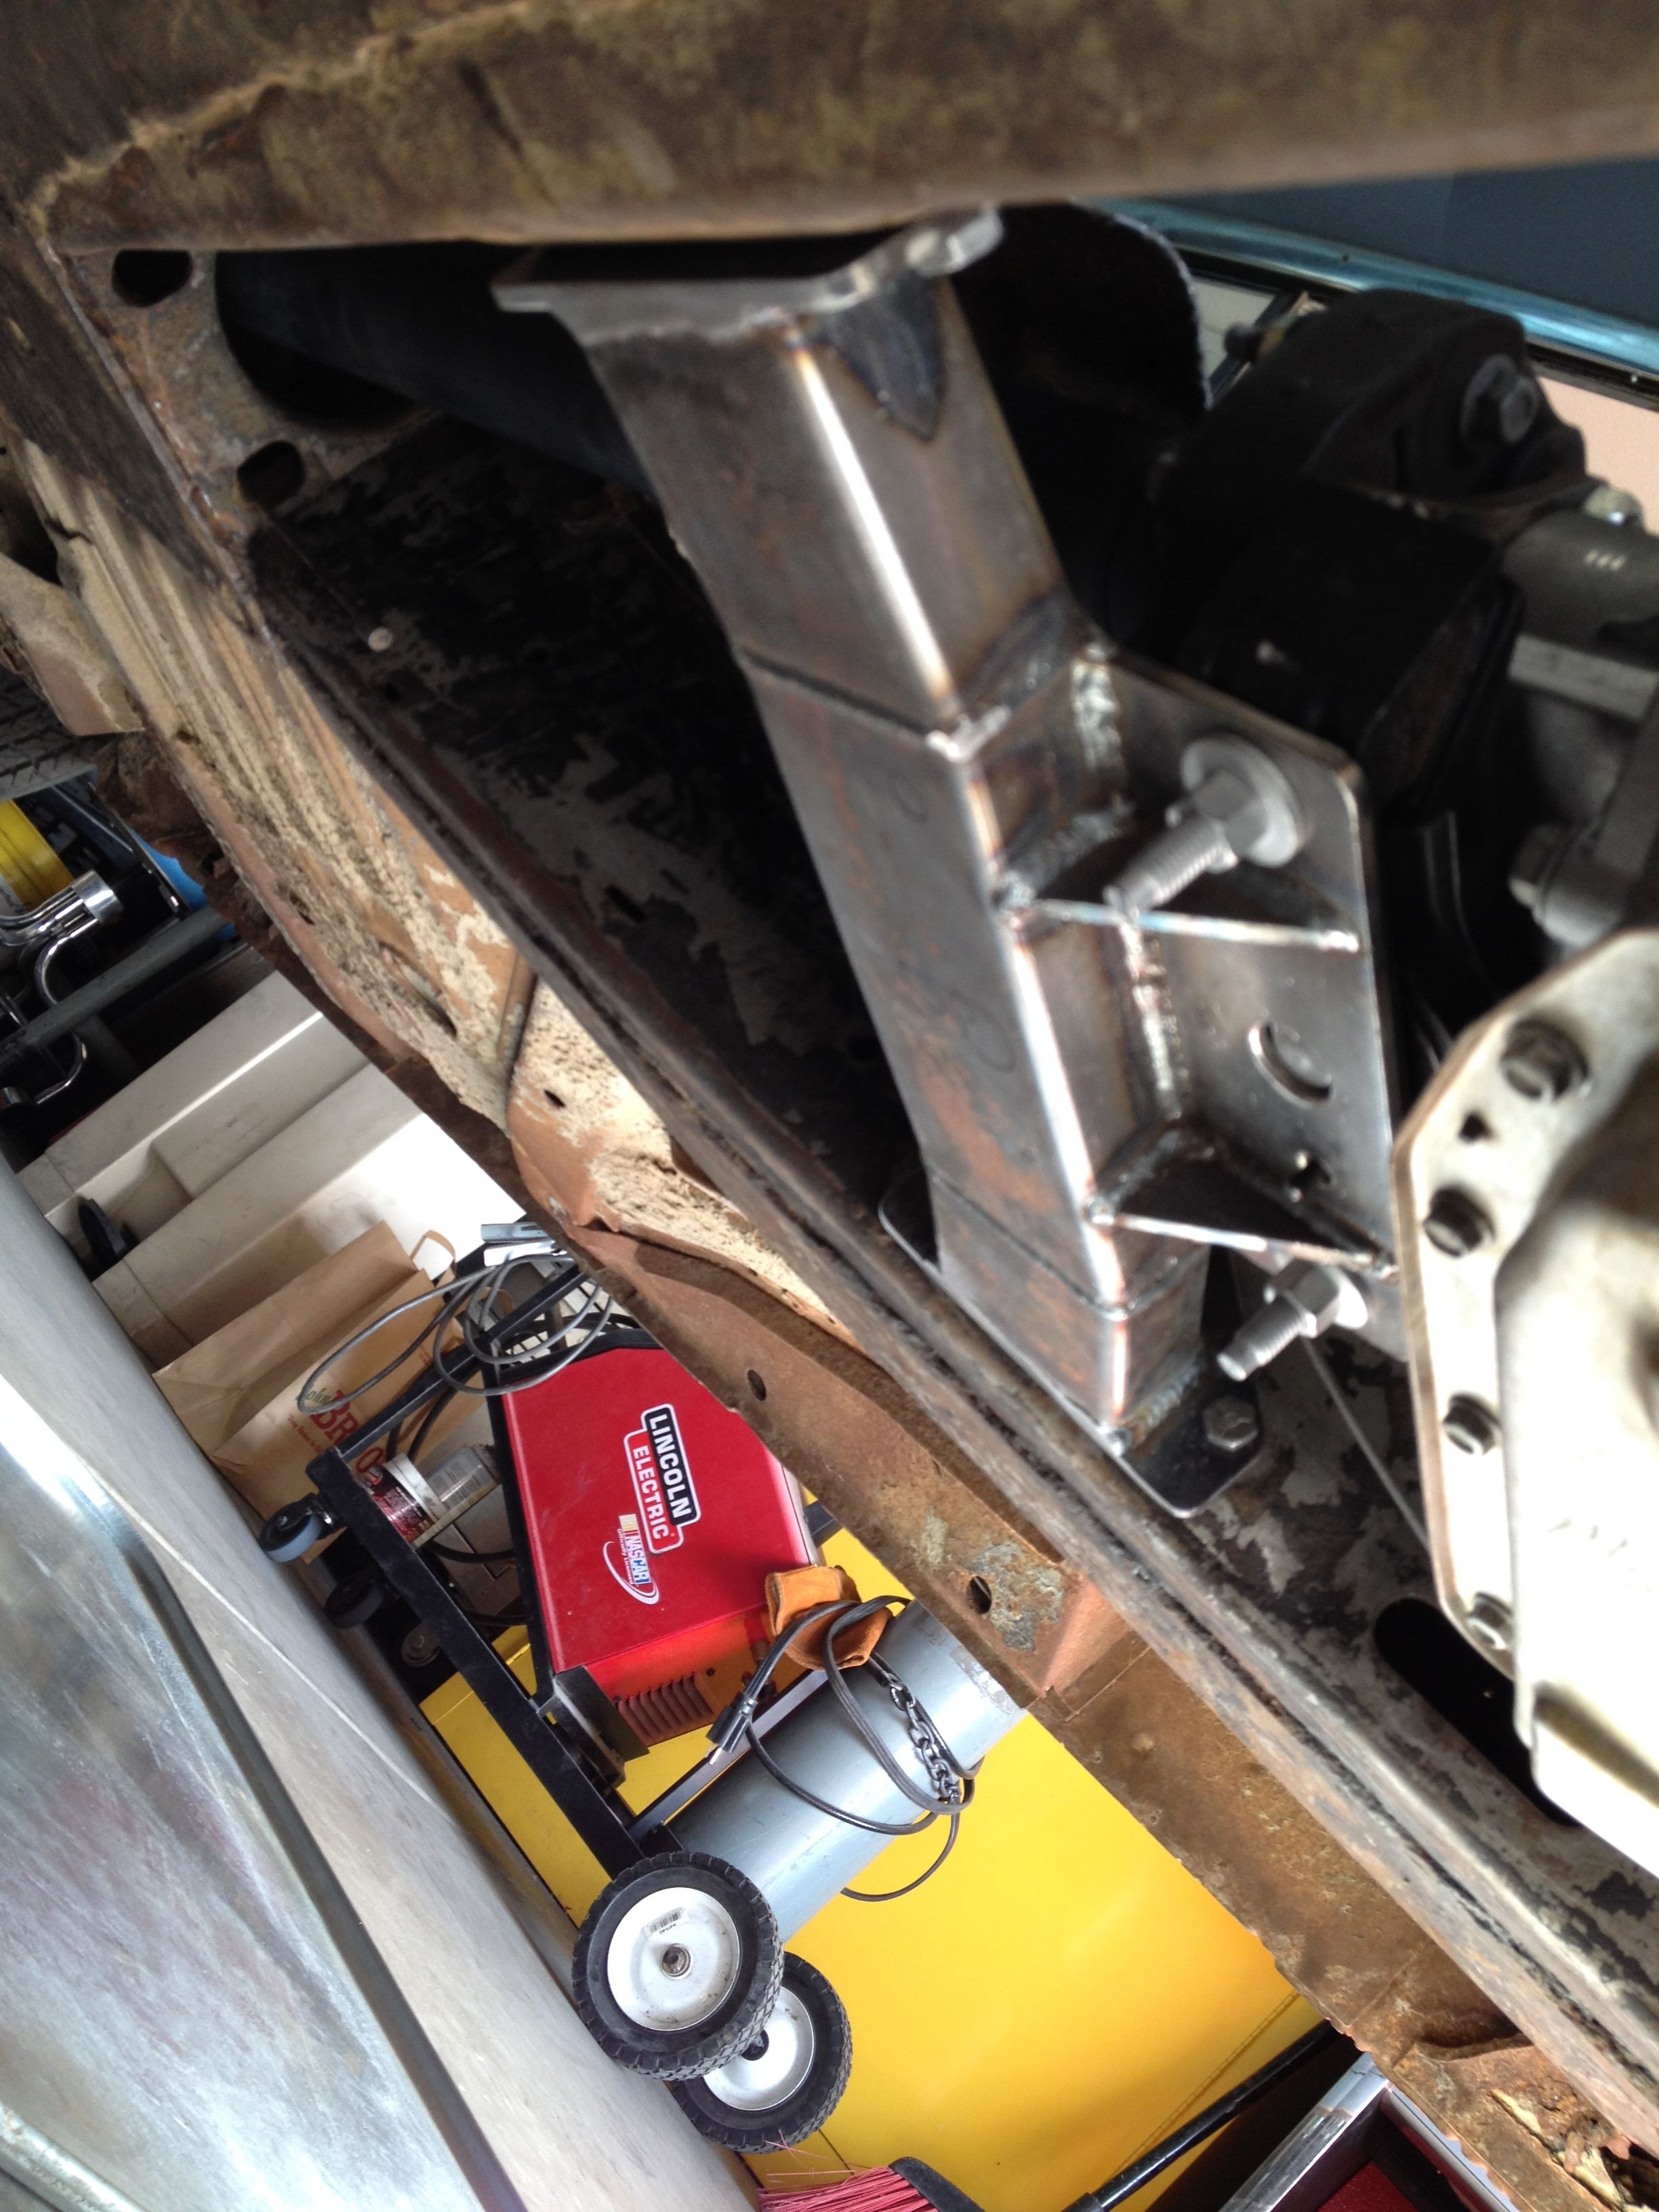 Trans mount in original frame locations - LSx 1963 Cadillac